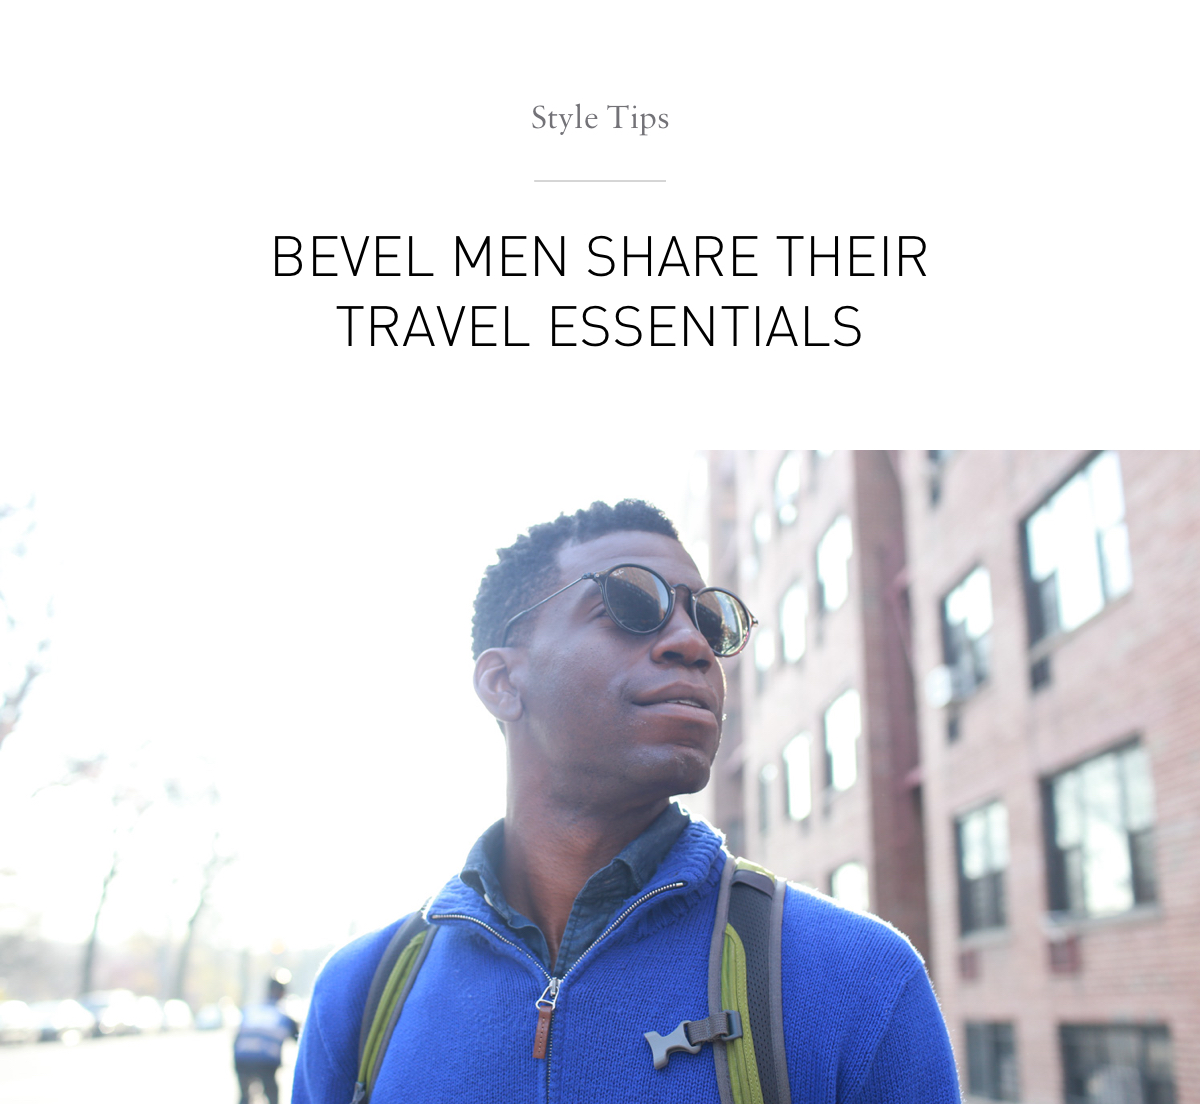 Style Tips: Travel Essentials